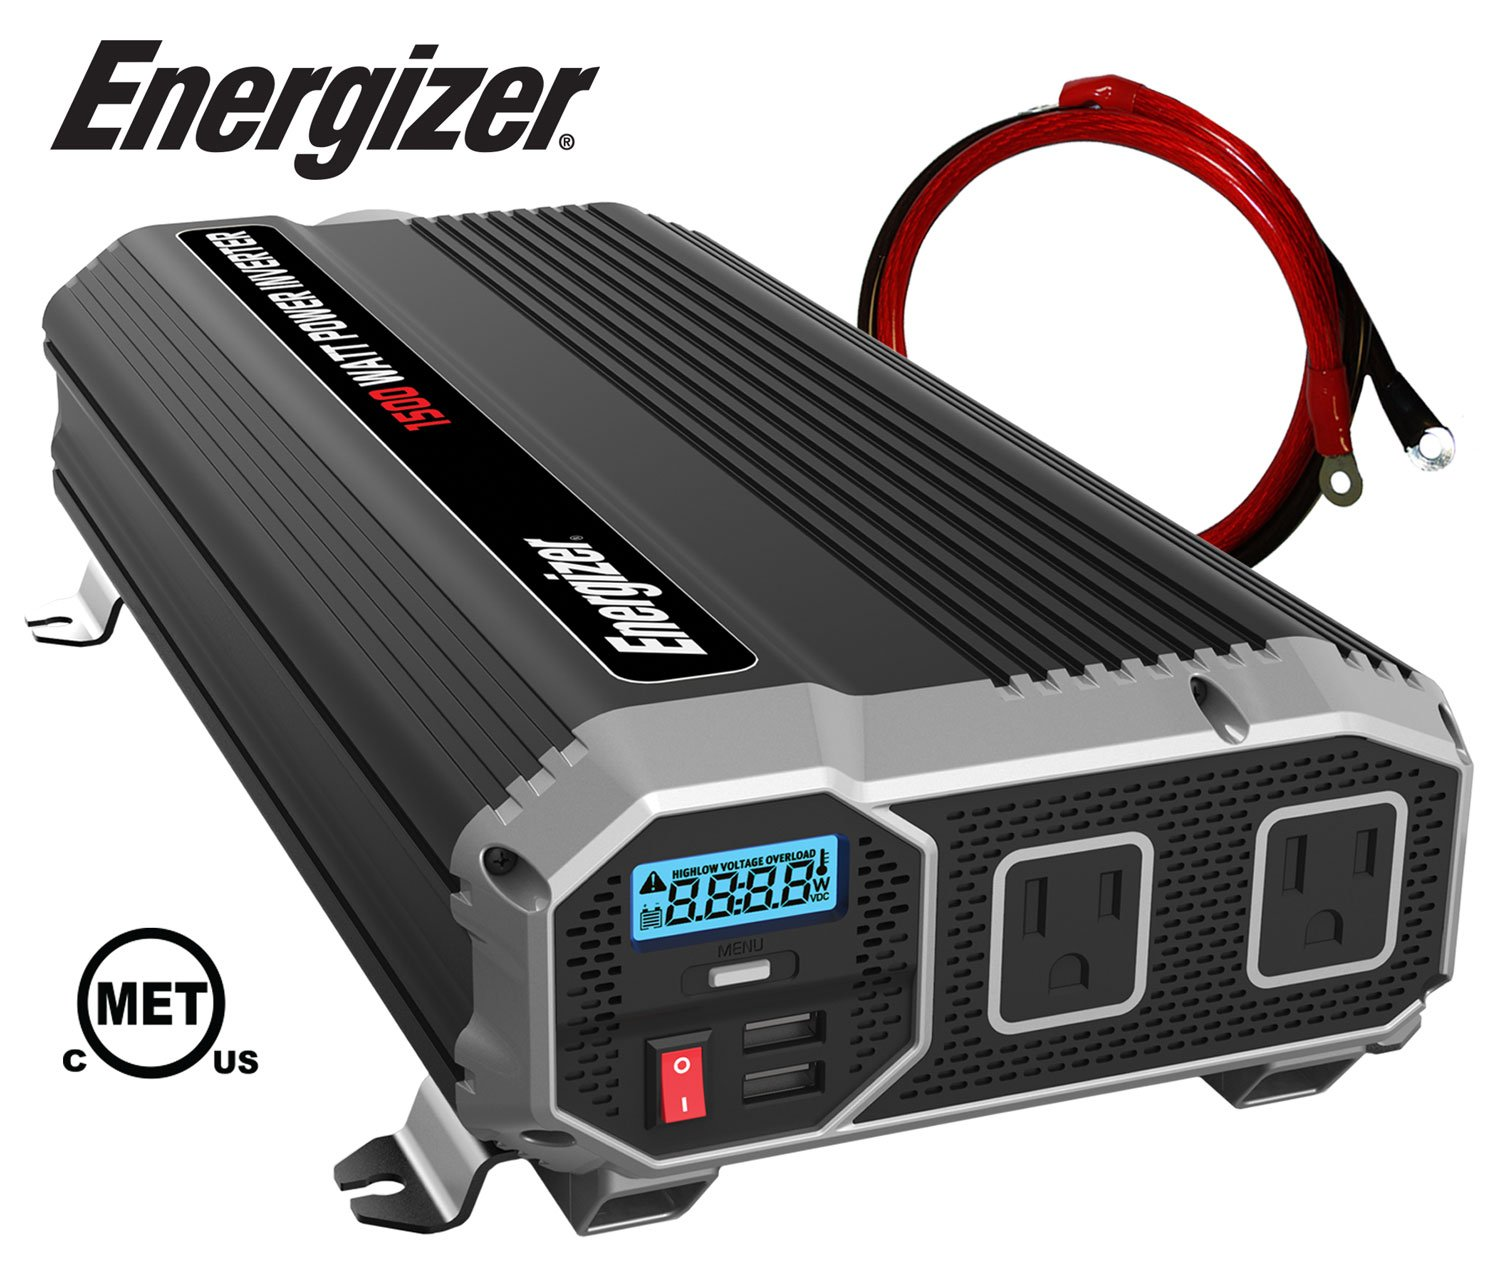 ENERGIZER 1500 Watt Power Inverter converts 12V DC from car's battery to 120 Volt AC 2x USB ports 2.4A